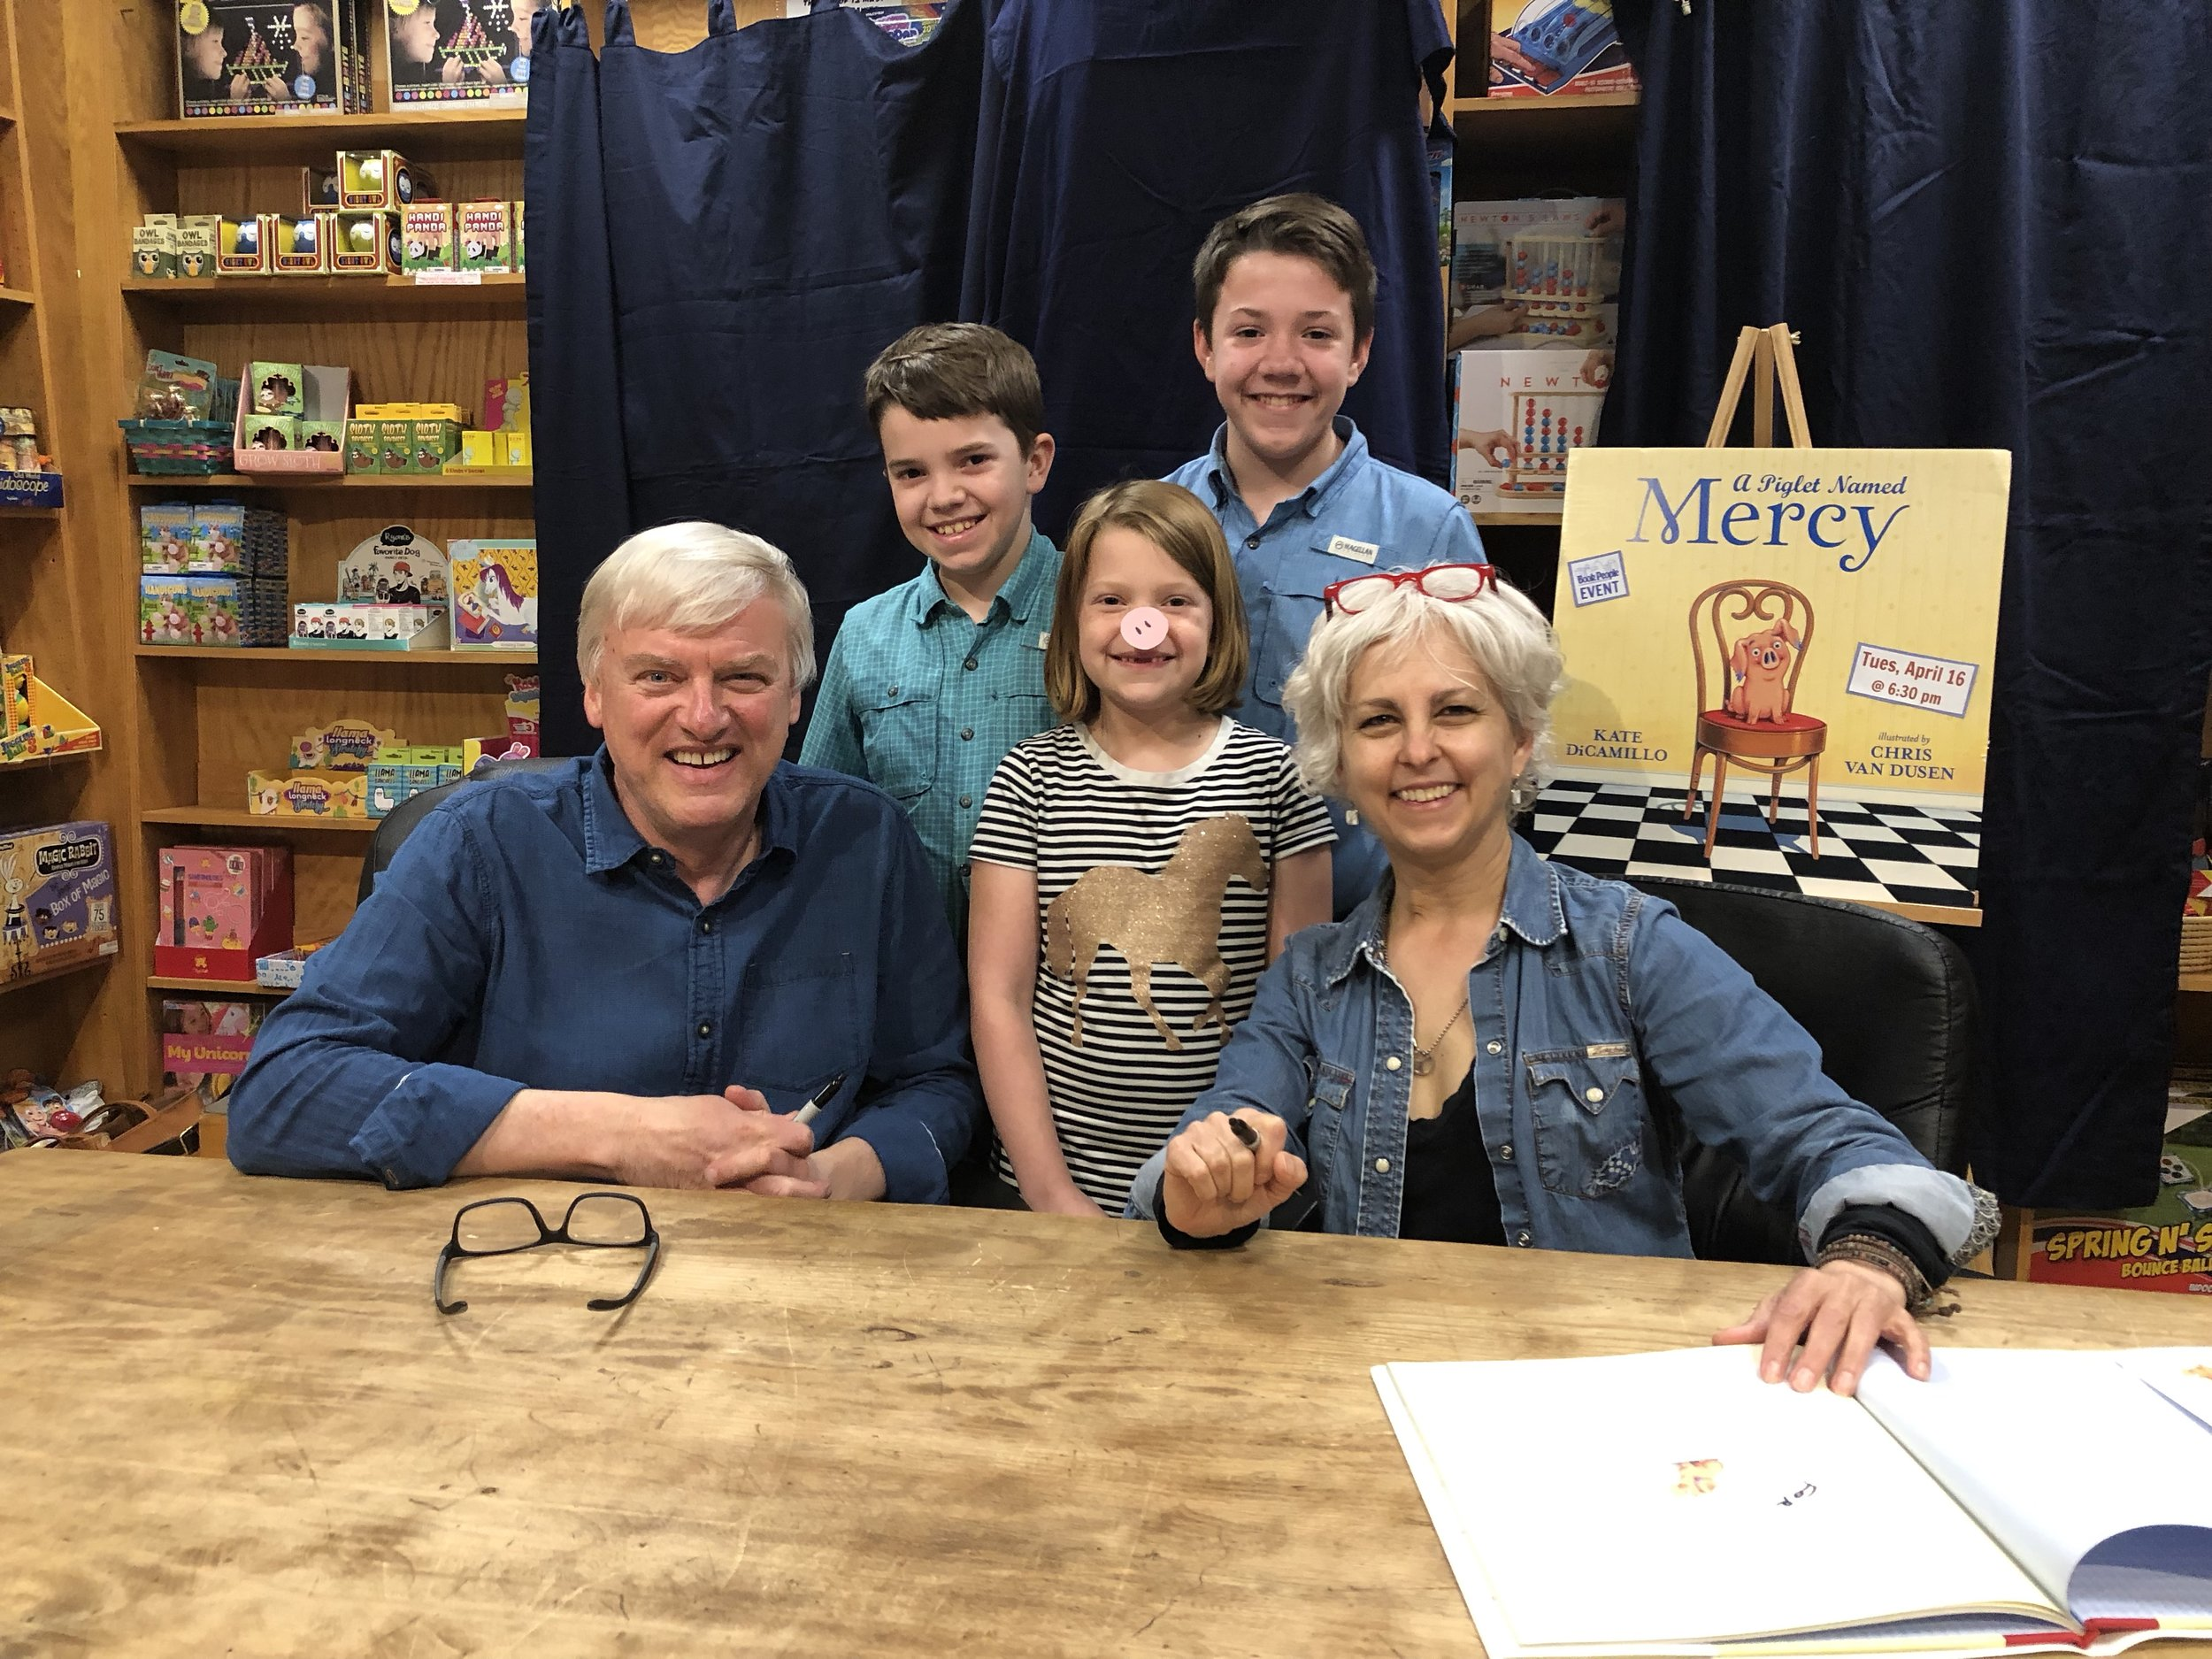 The Wiglets with Kate DiCamillo and Chris Van Dusen